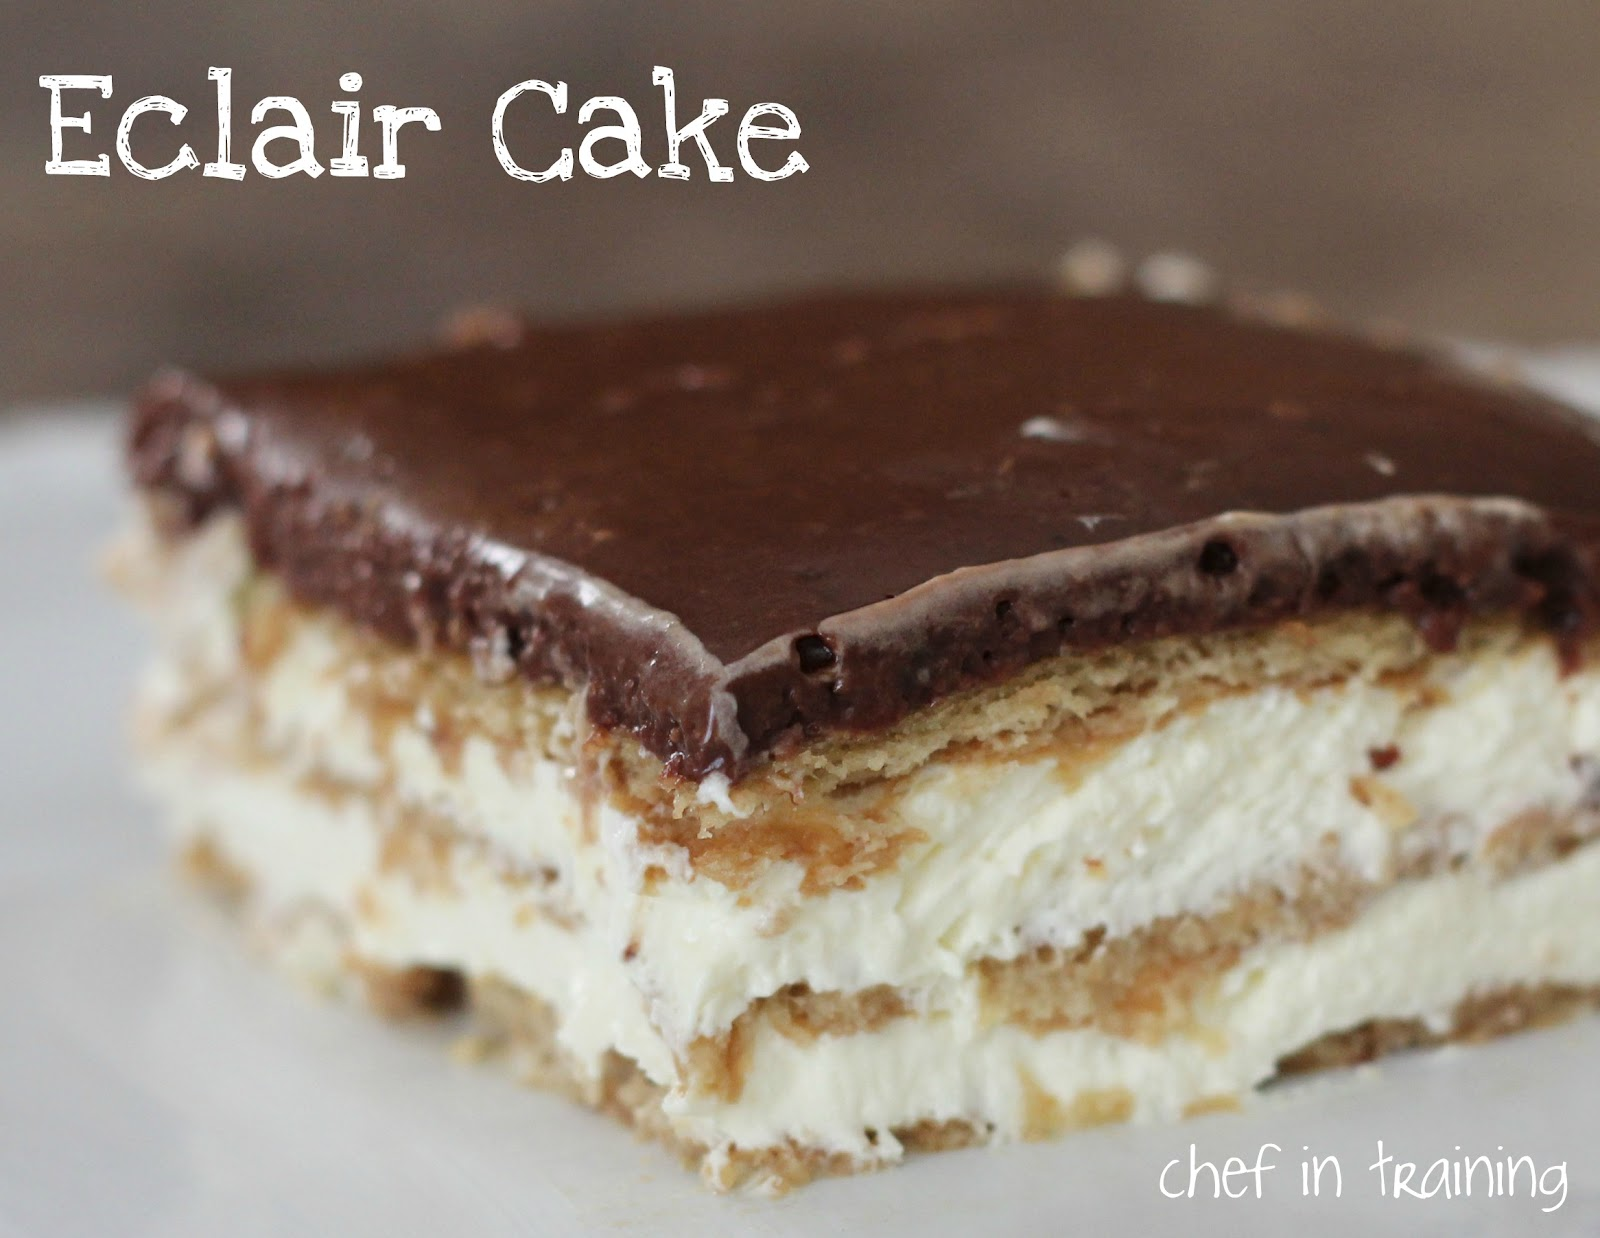 Eclair Cake - Chef in Training